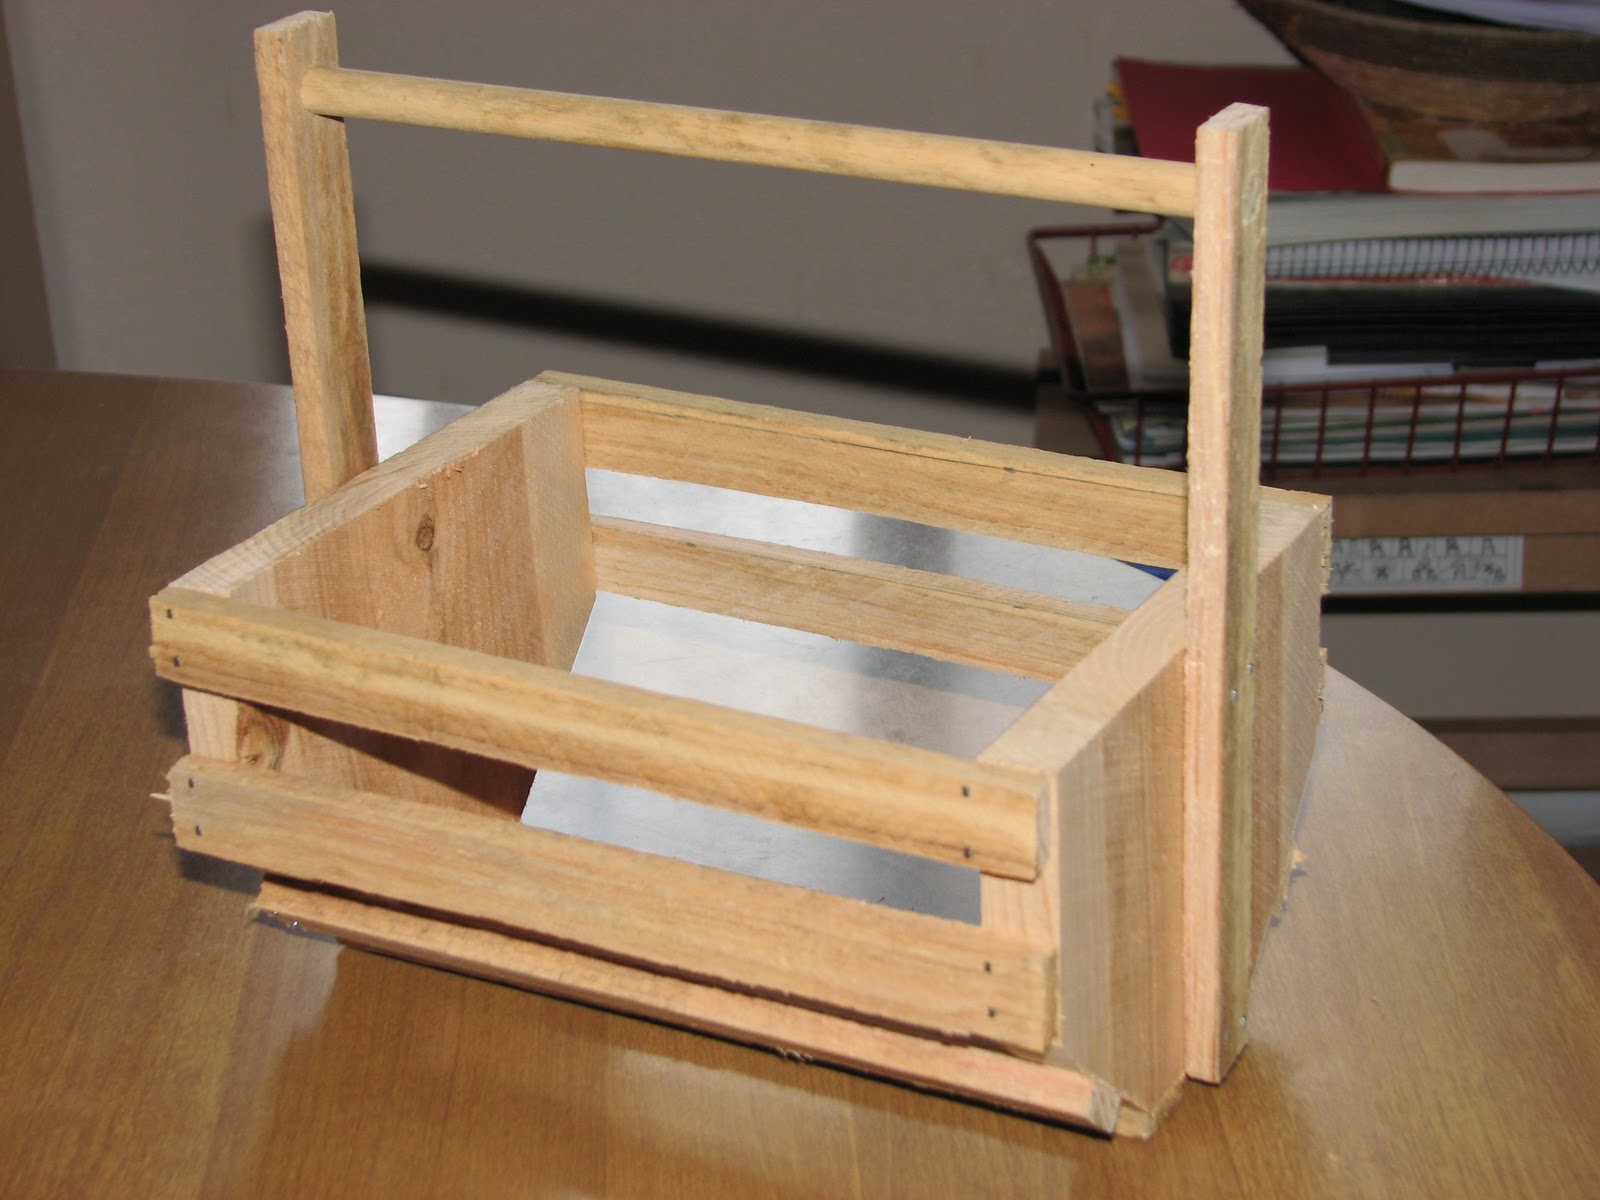 easy woodworking projects for gifts | Woodworking Project North ...